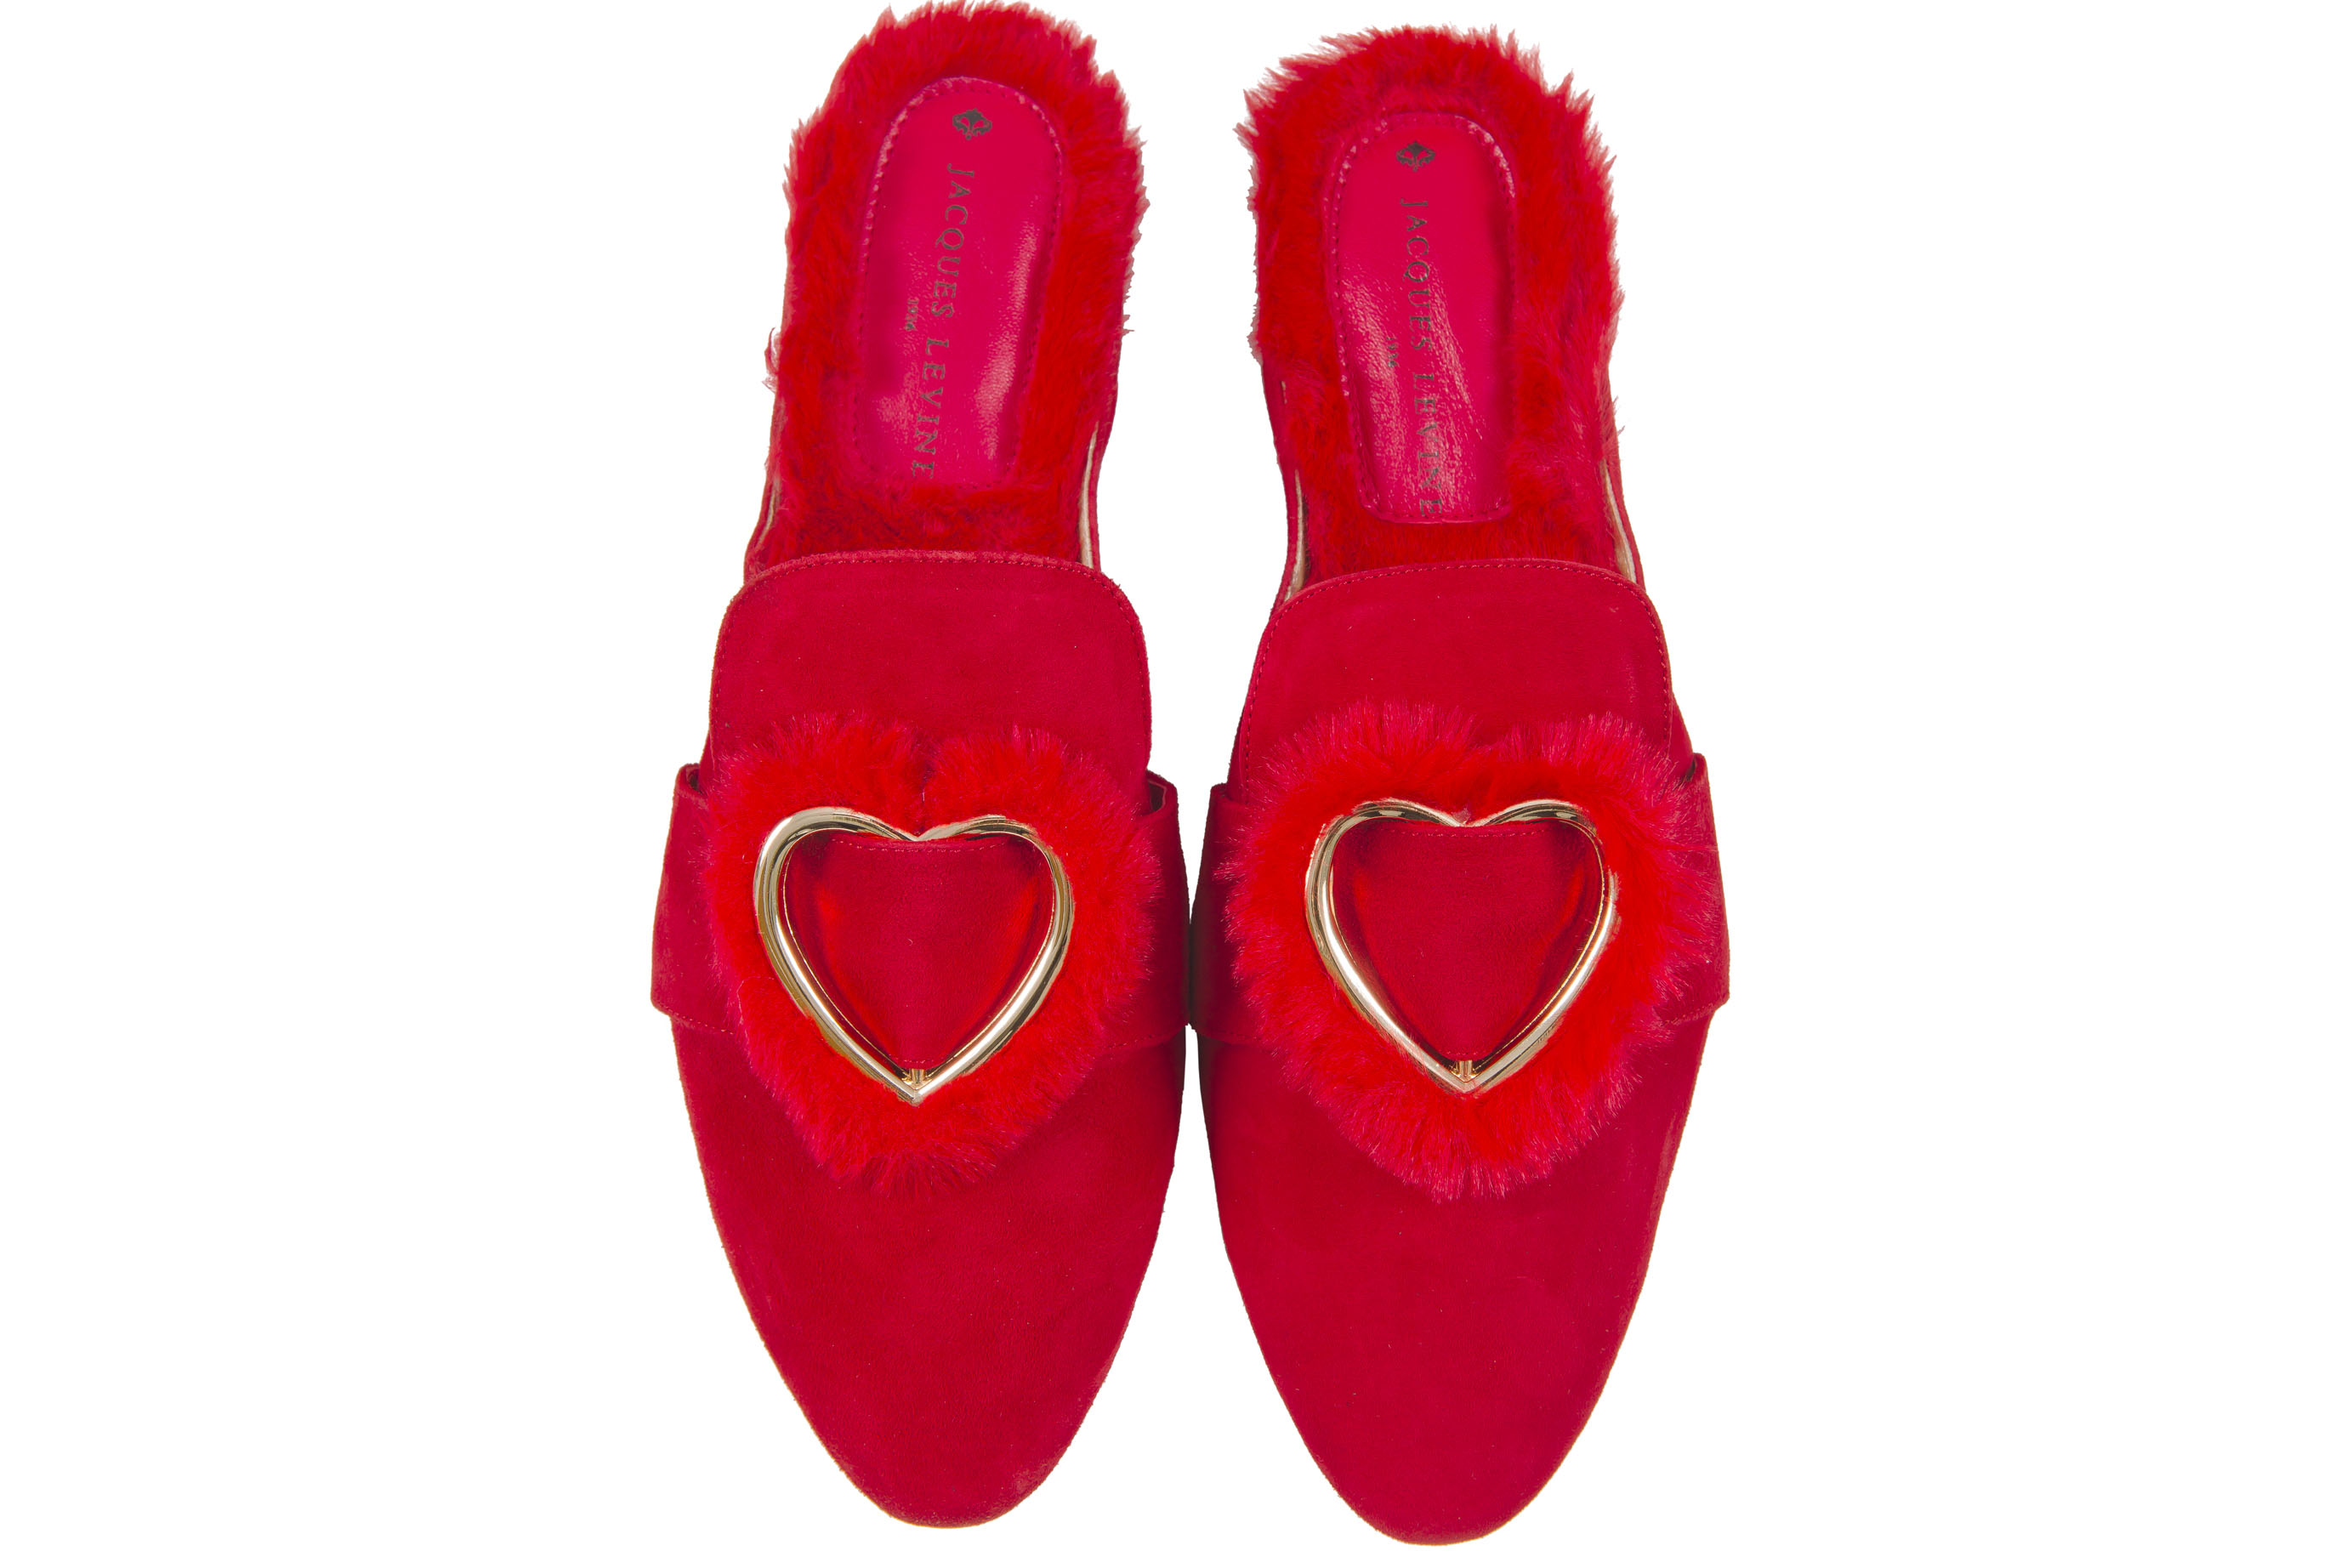 Jacques Levine slippers